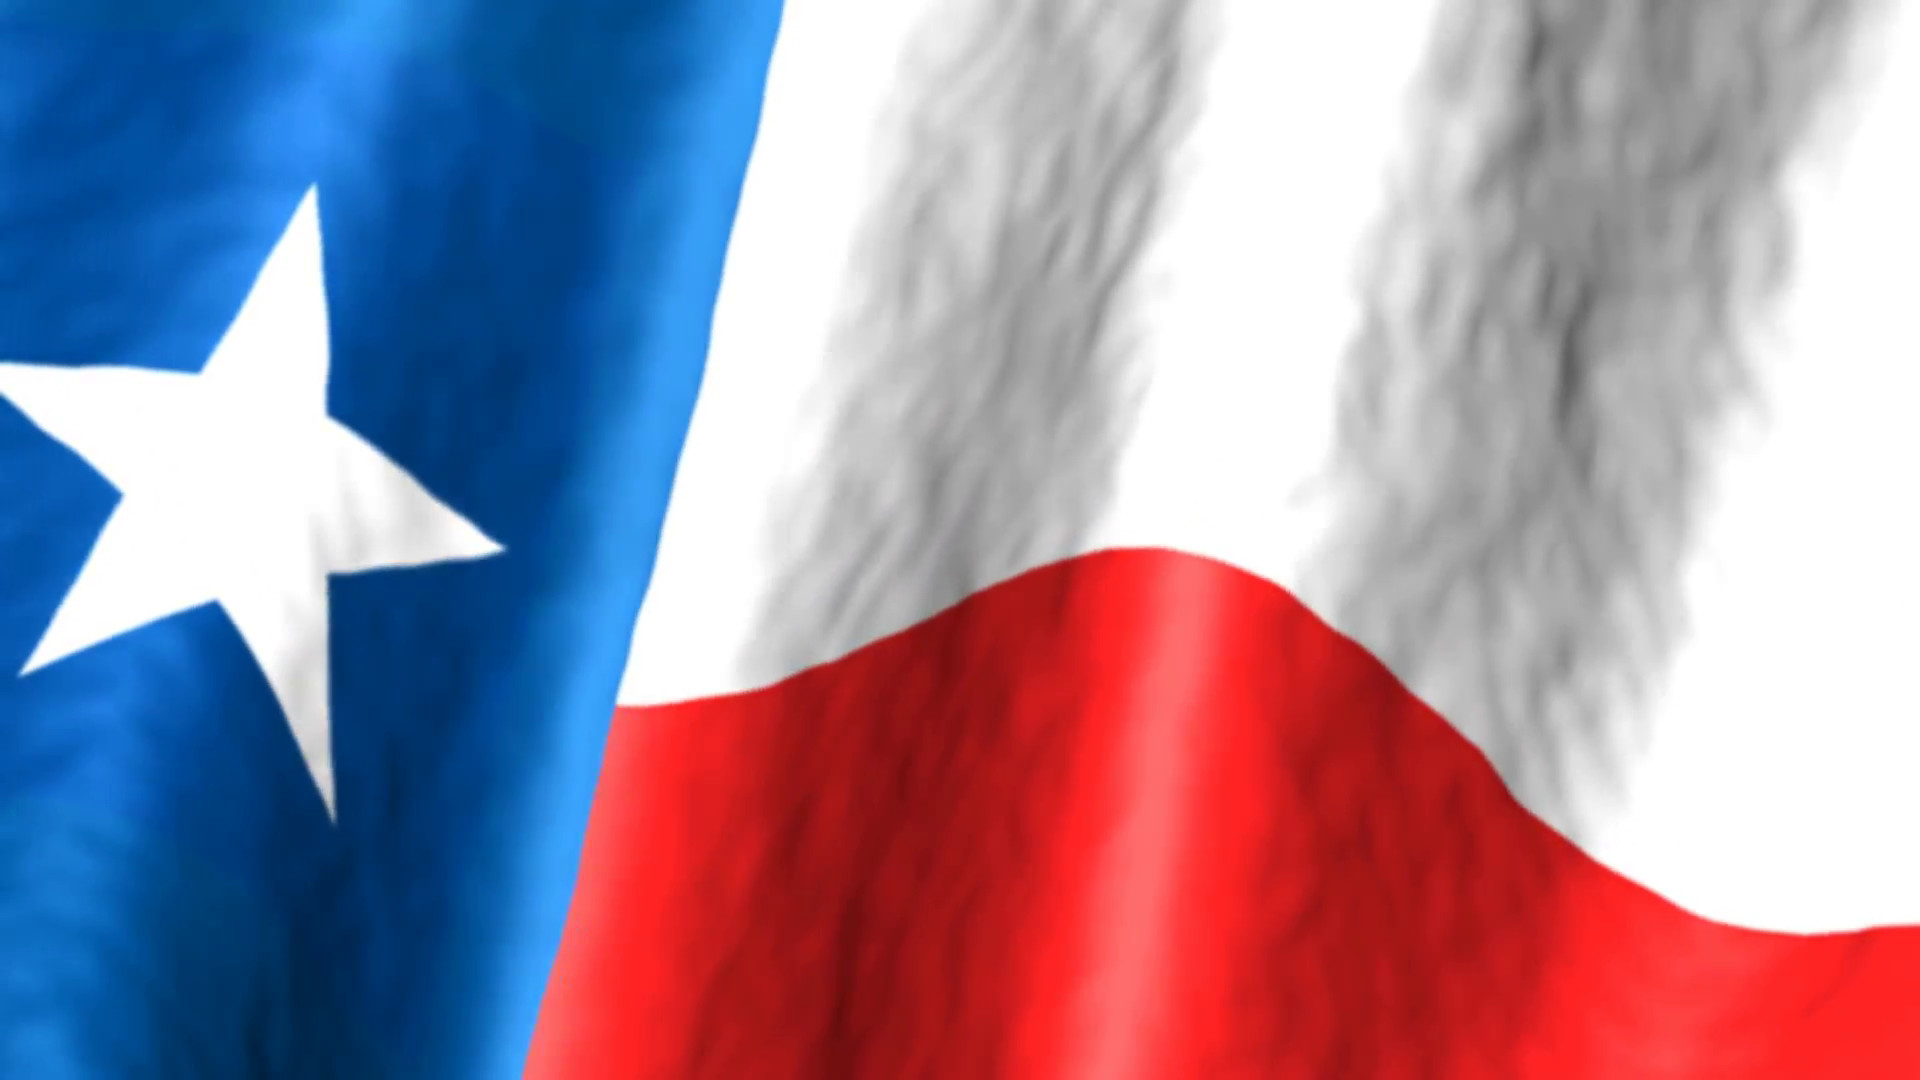 Supreme Hd Wallpaper Iphone X Texas Flag Wallpapers 43 Images